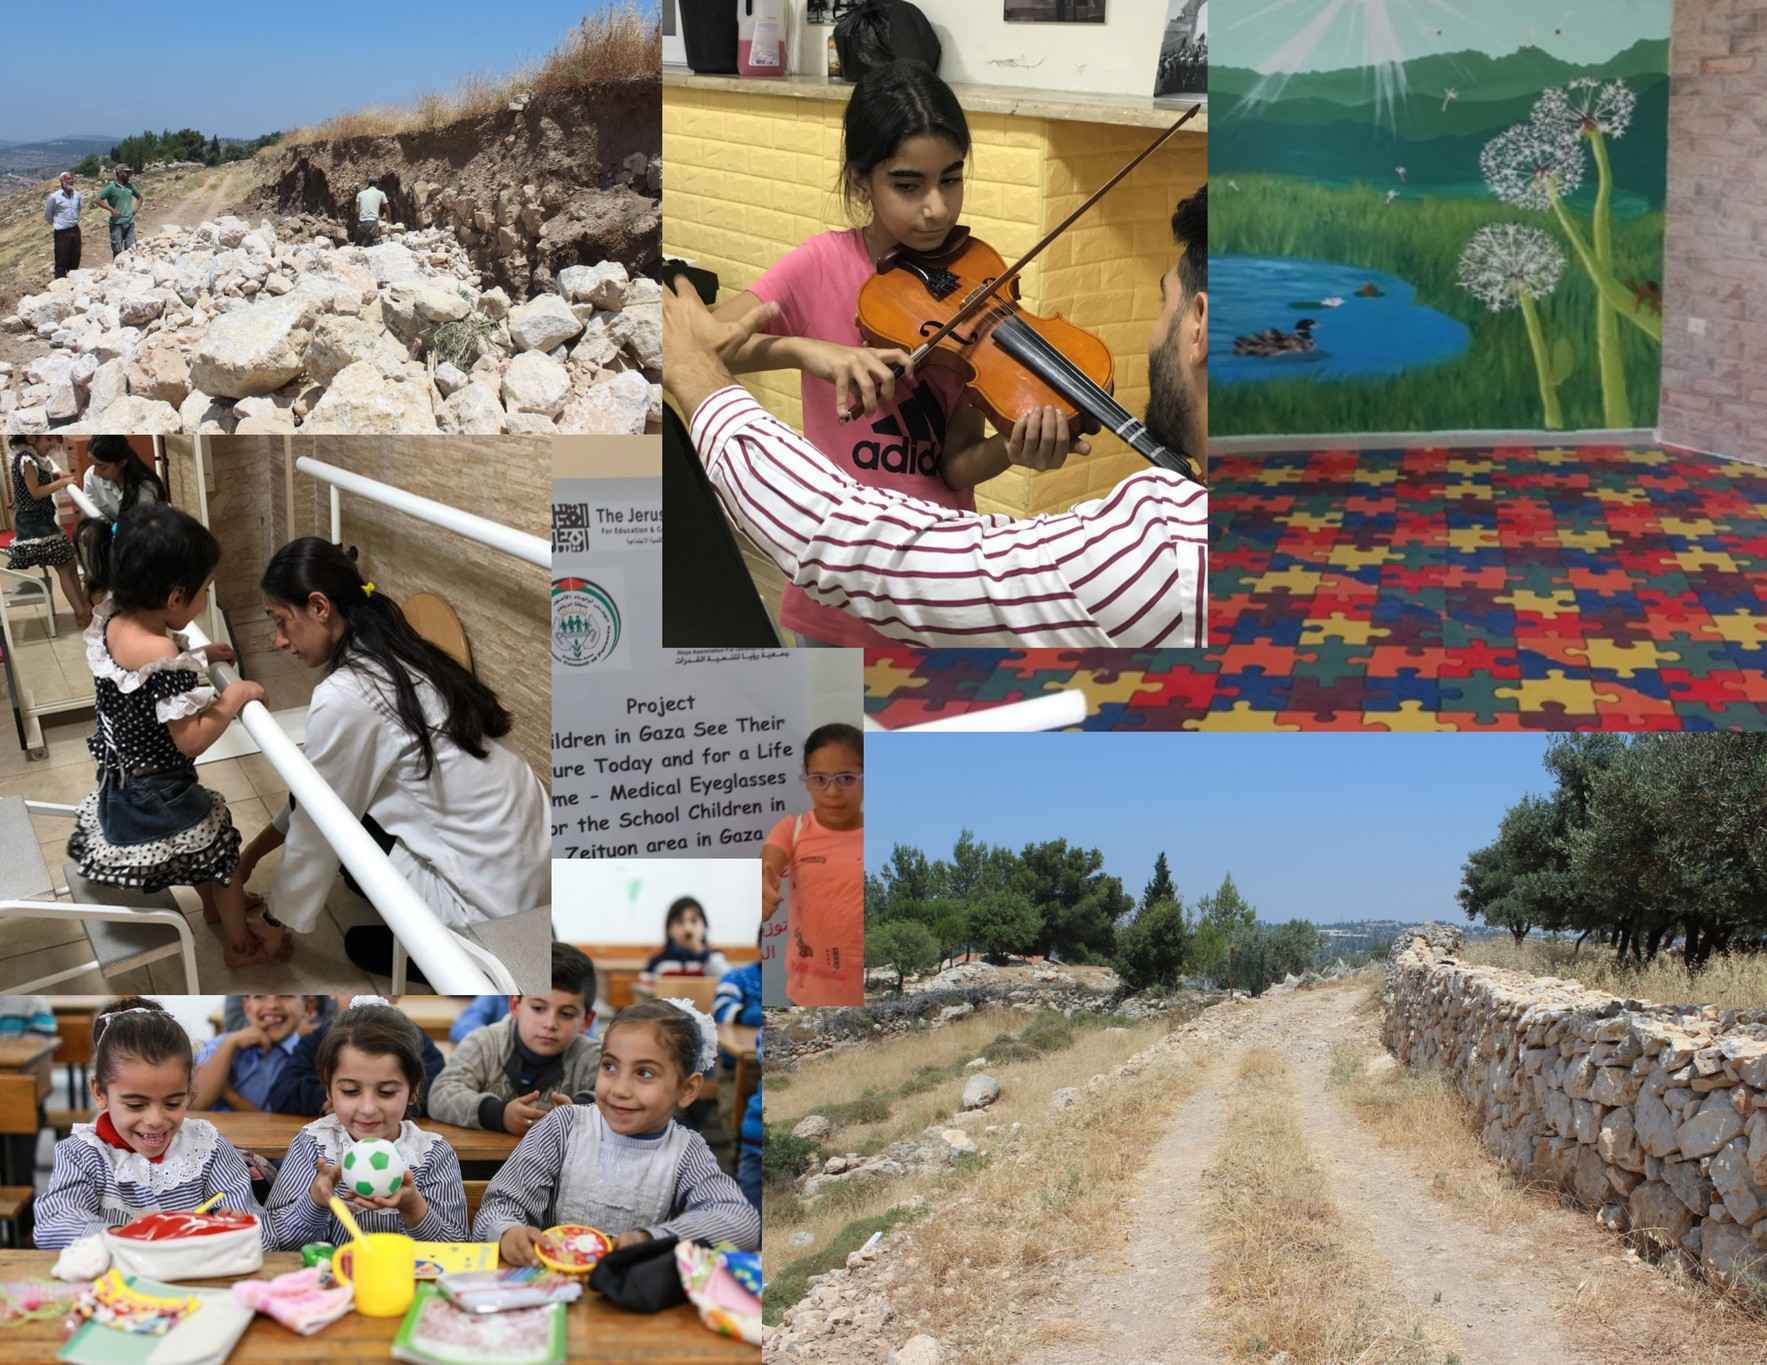 Make a gift to help Palestinian children in Gaza and the West Bank image